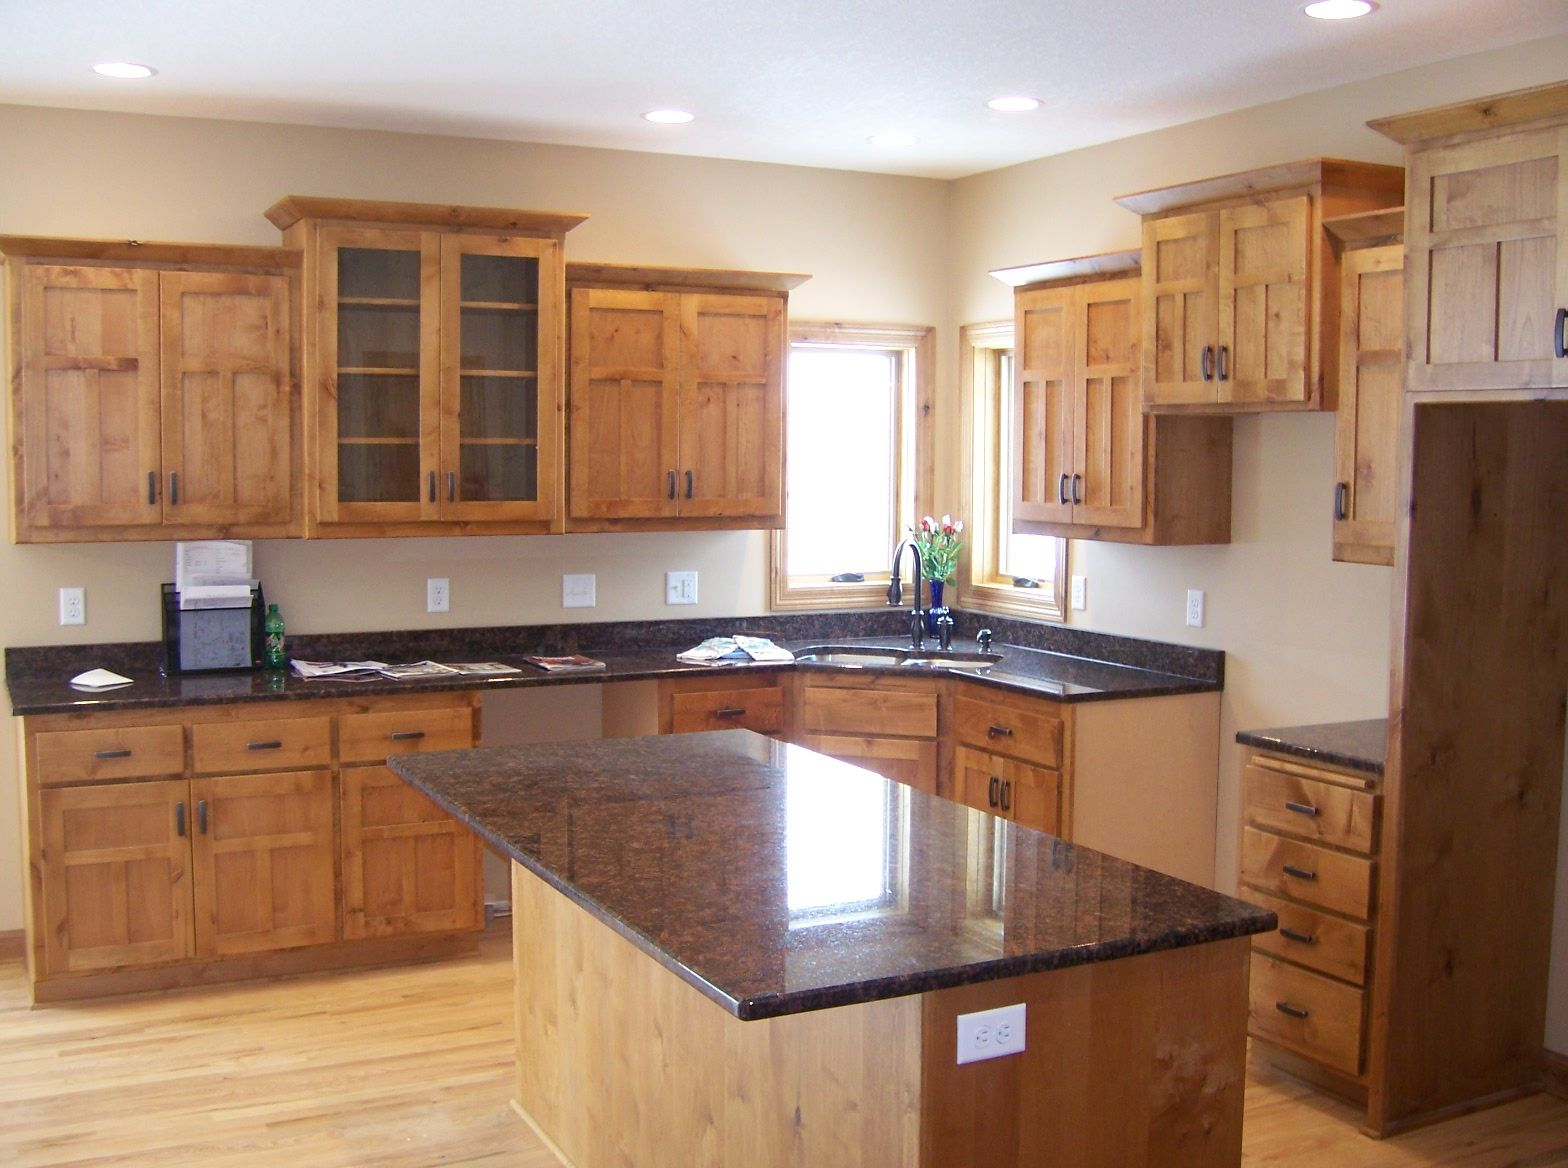 Cherry Maple And Knotty Alder Cabinetry In Flagstaff Lake House Kitchen Kitchen Cabinet Design Used Kitchen Cabinets